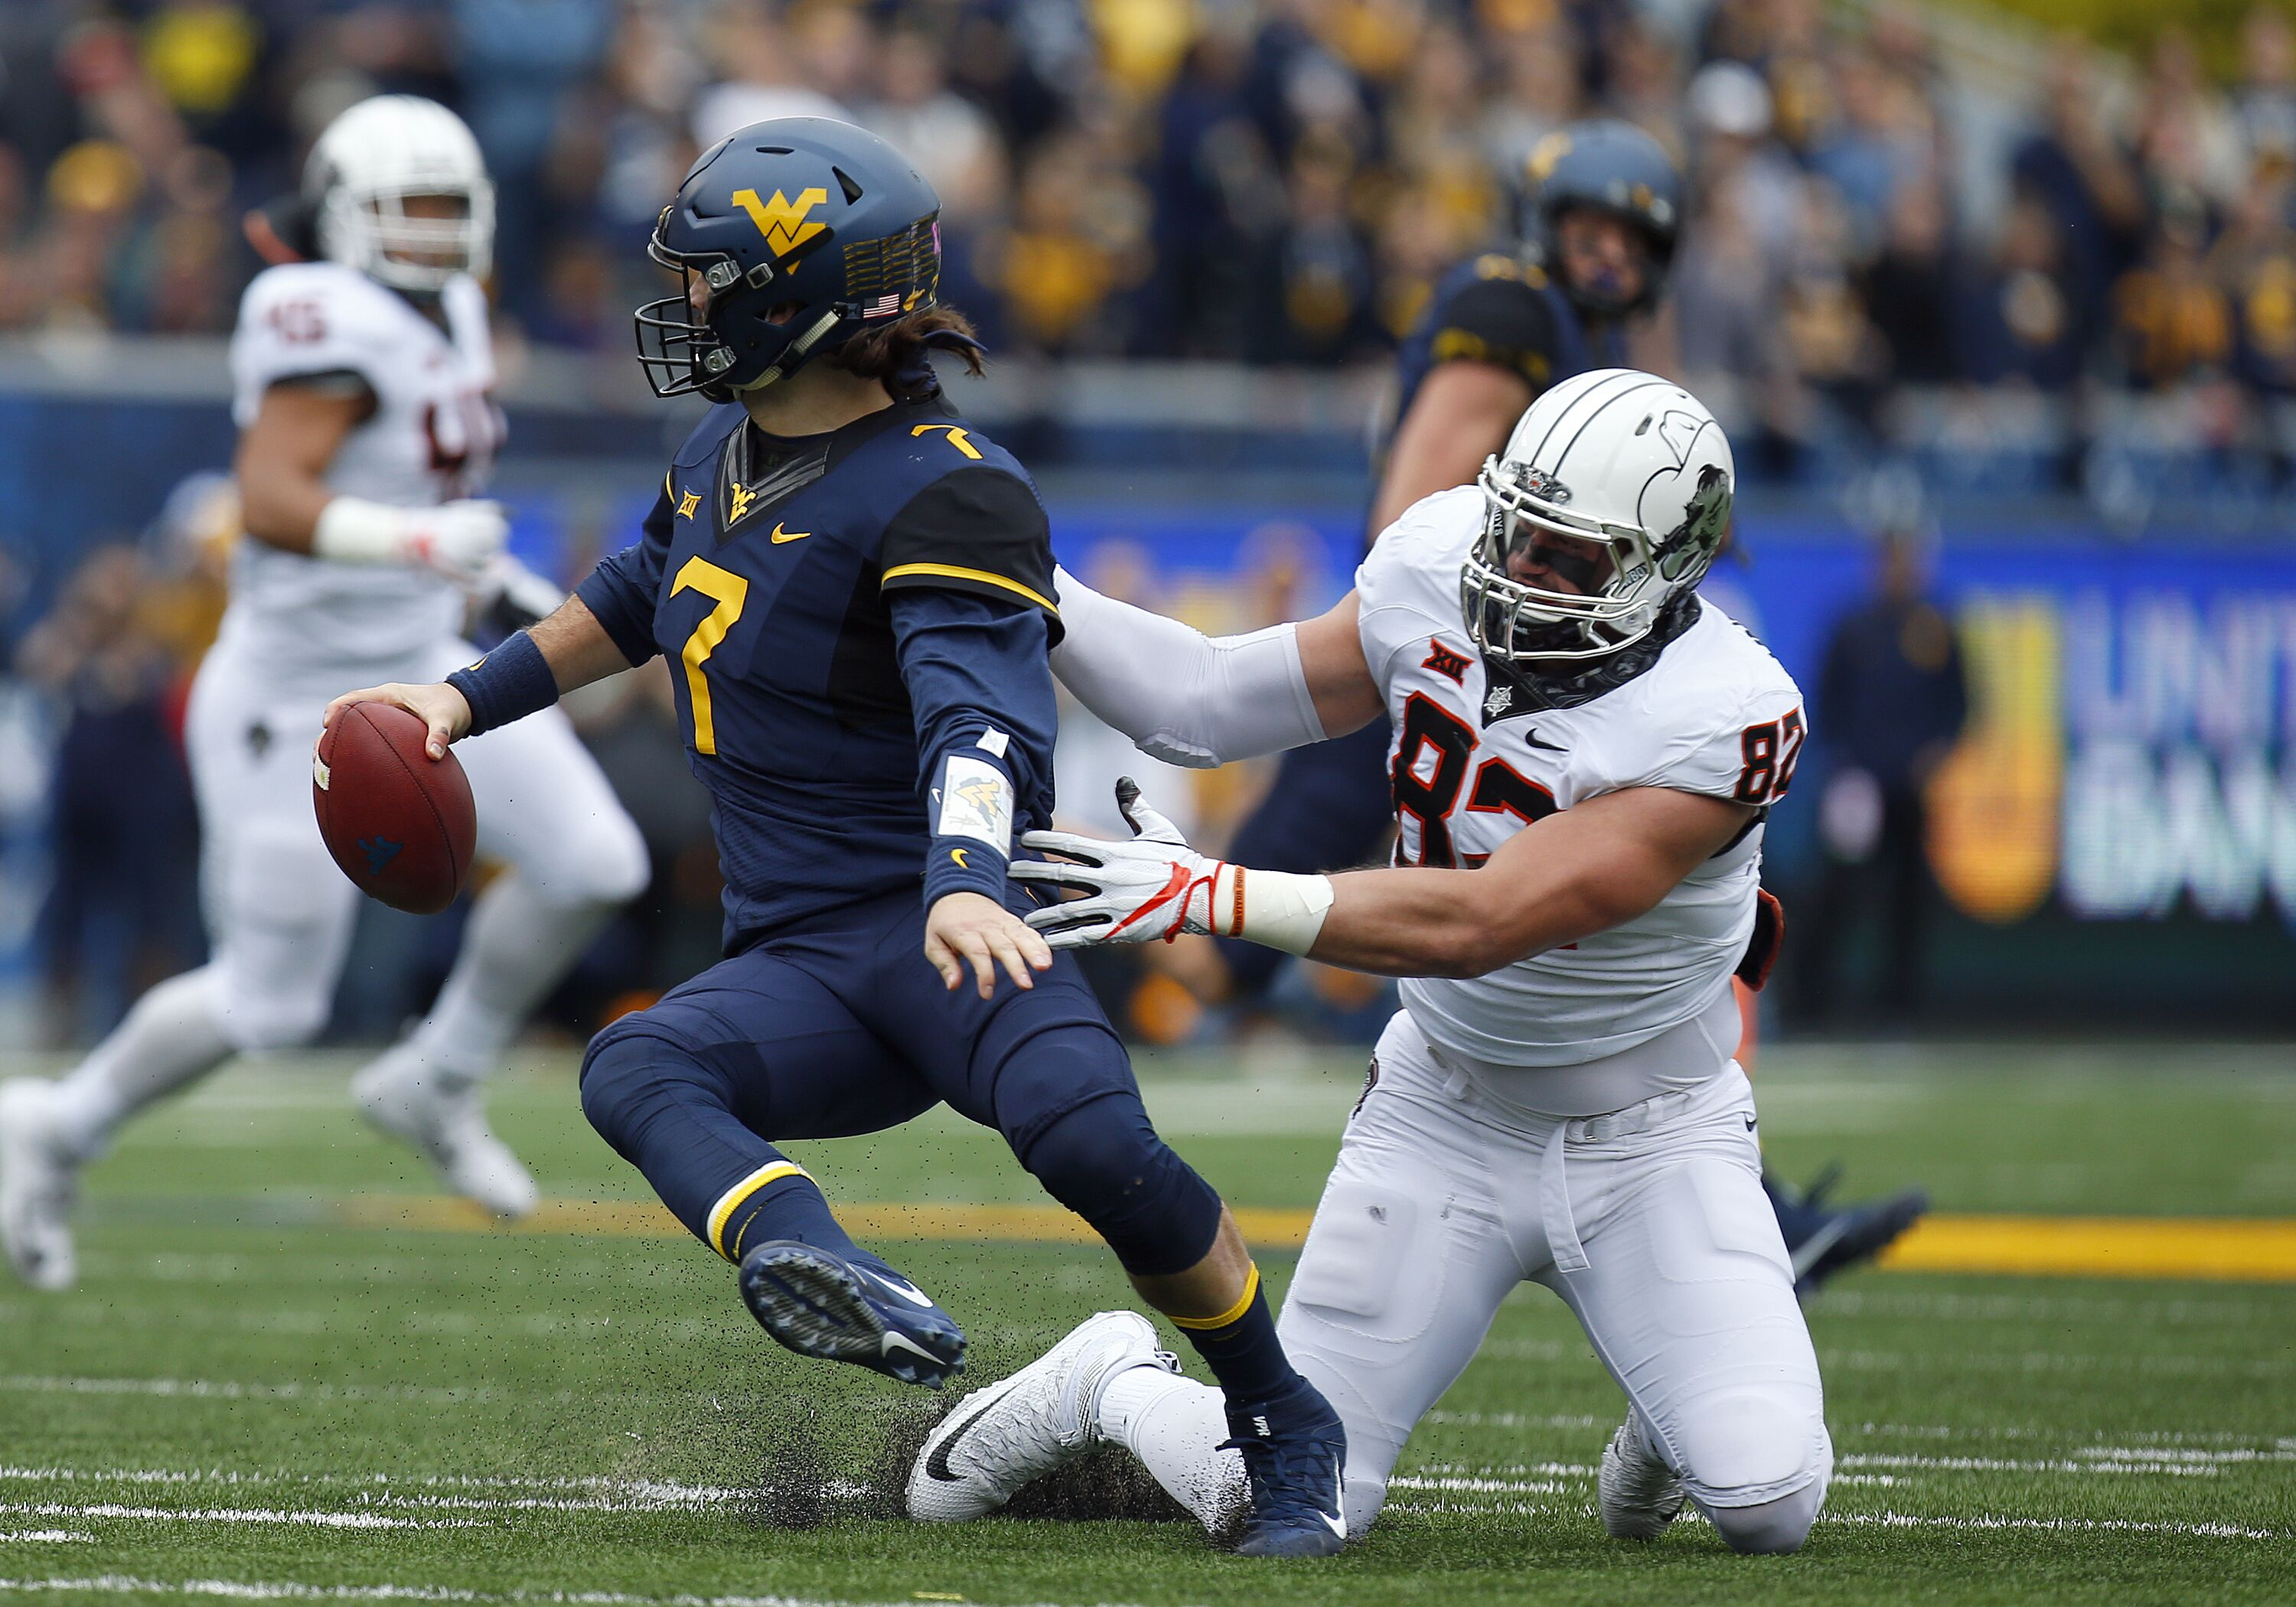 West Virginia Mountaineers Football on The Smoking Musket